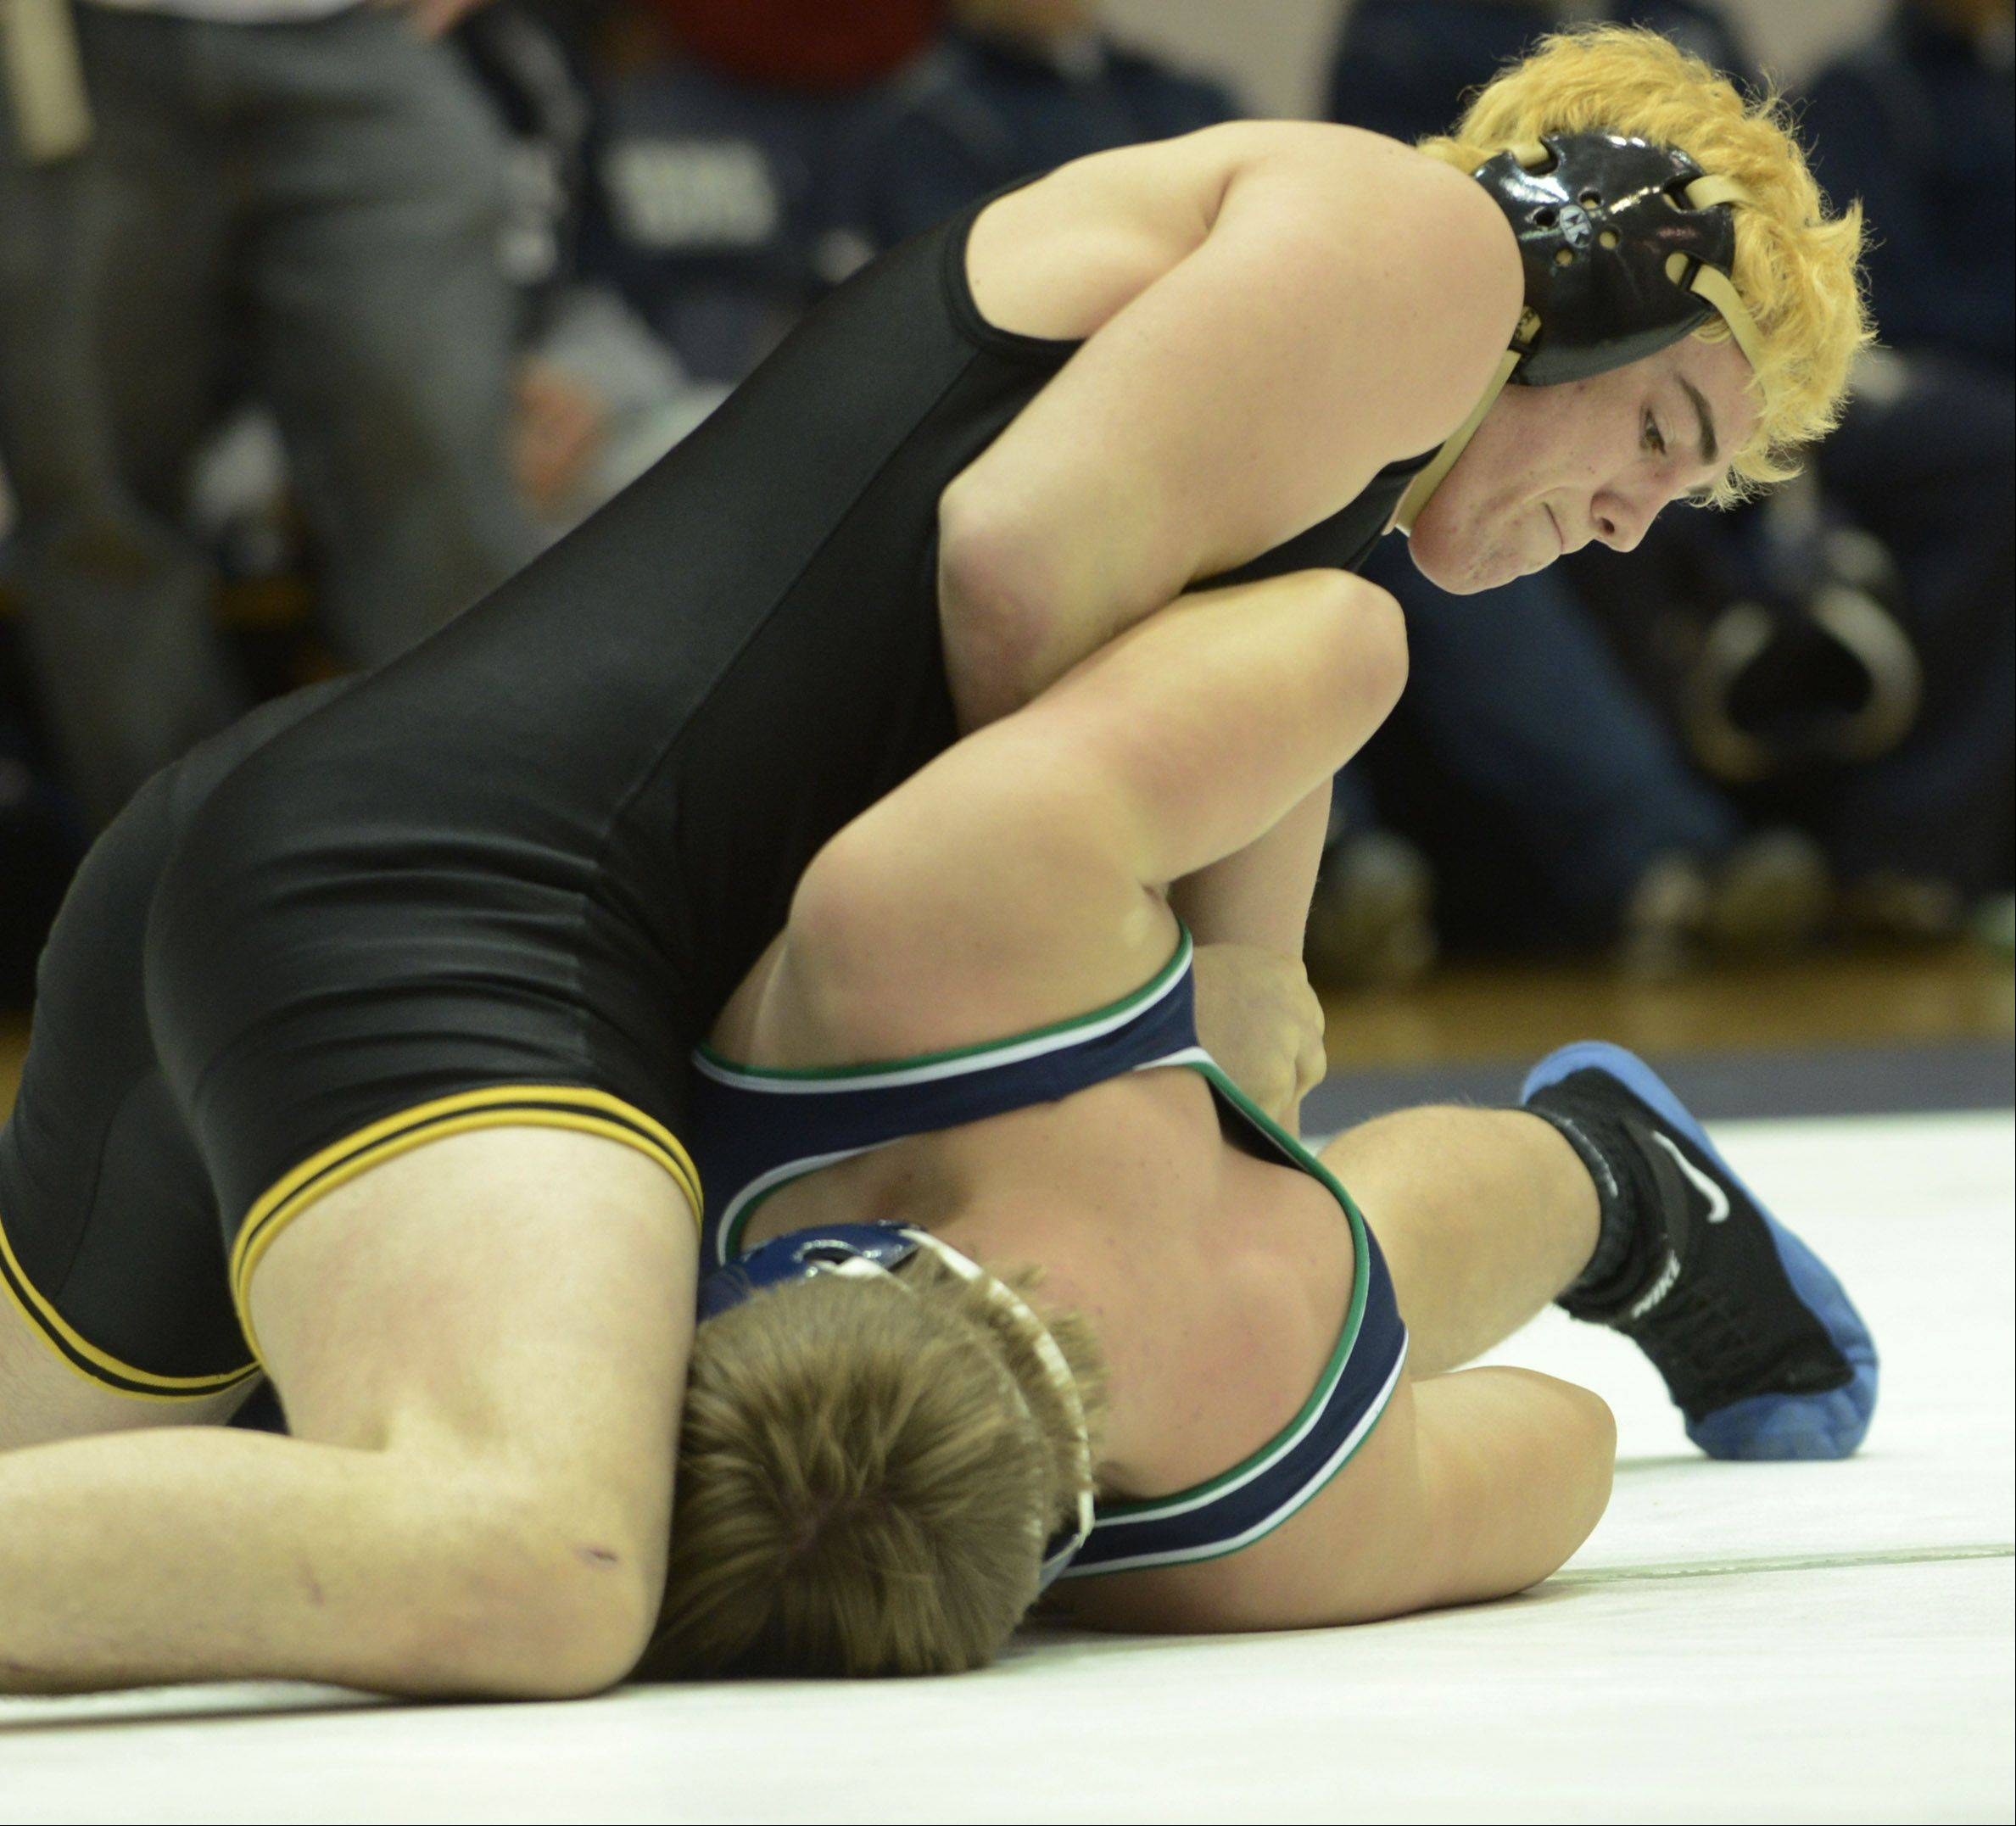 Glenbard North's Luke Greenberg, top, defeats Notre Dame's Brian Brand in the 195-pound match during the Class 3A wrestling sectional at Lake Park Tuesday.